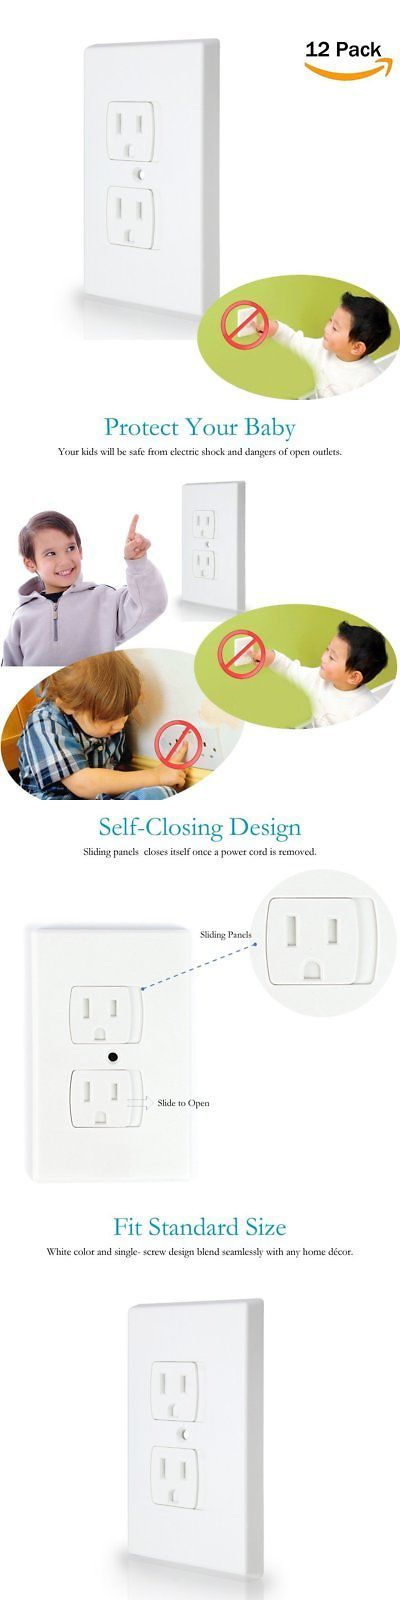 Outlet Covers 134764: Baby Safety Self-Closing Electrical Outlet Covers | Alternative To Wall Socket P -> BUY IT NOW ONLY: $40.37 on eBay!